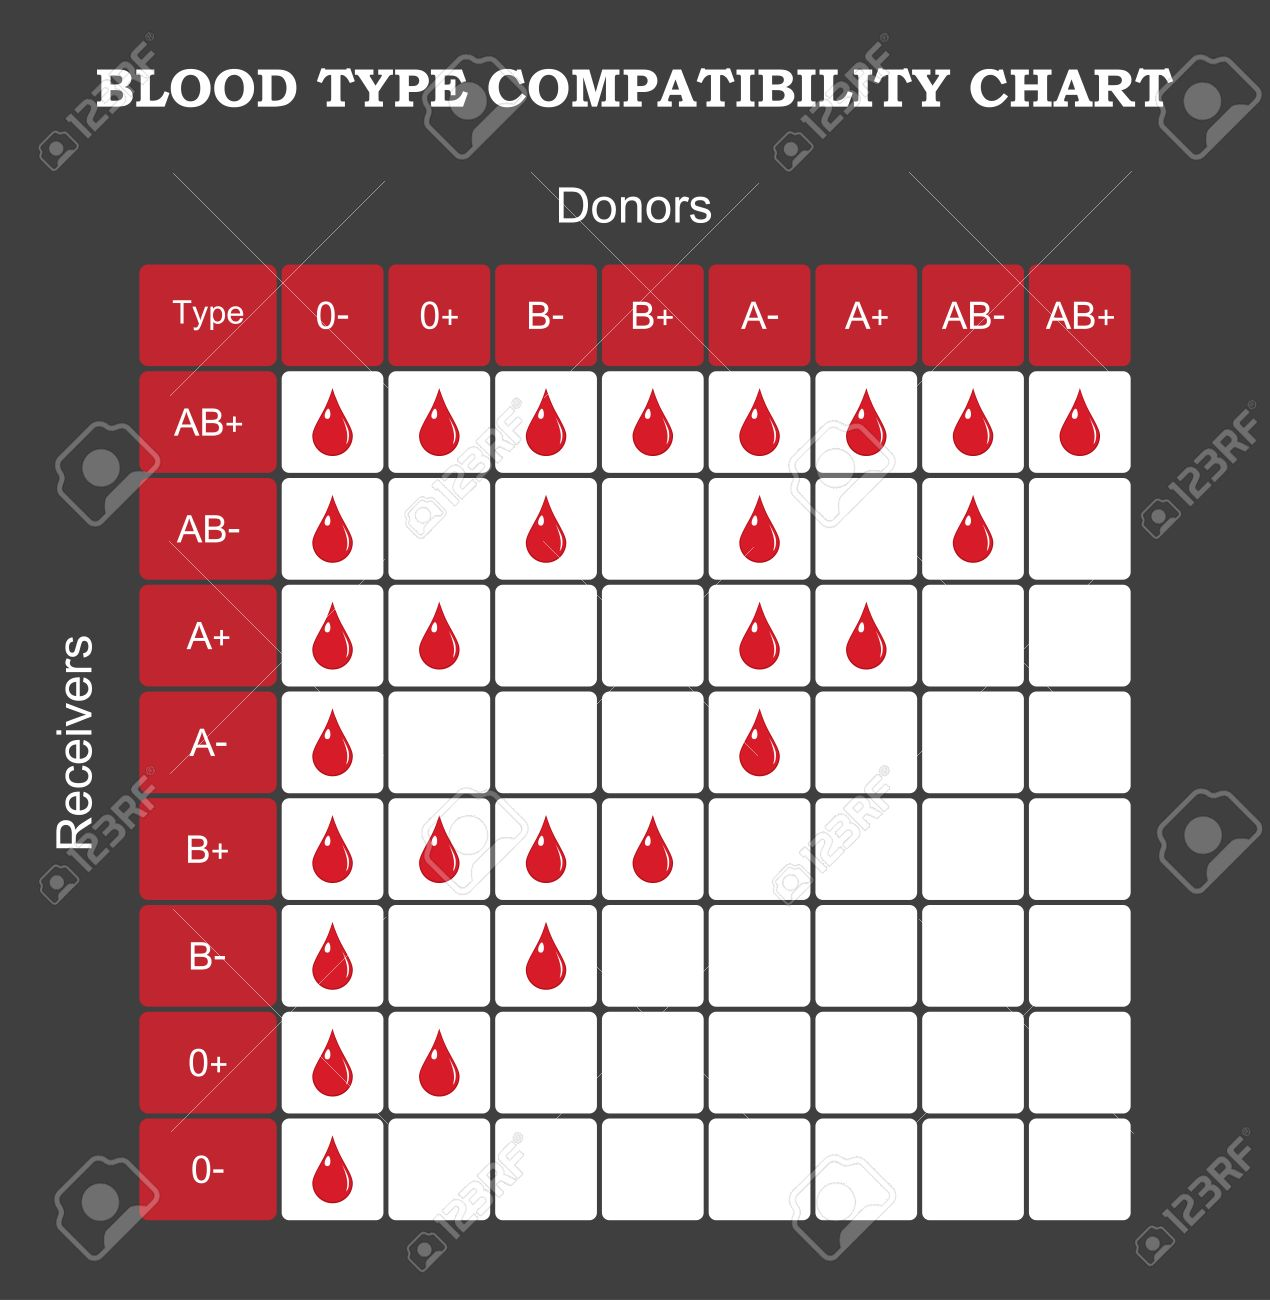 Blood type compatibility chart royalty free cliparts vectors and